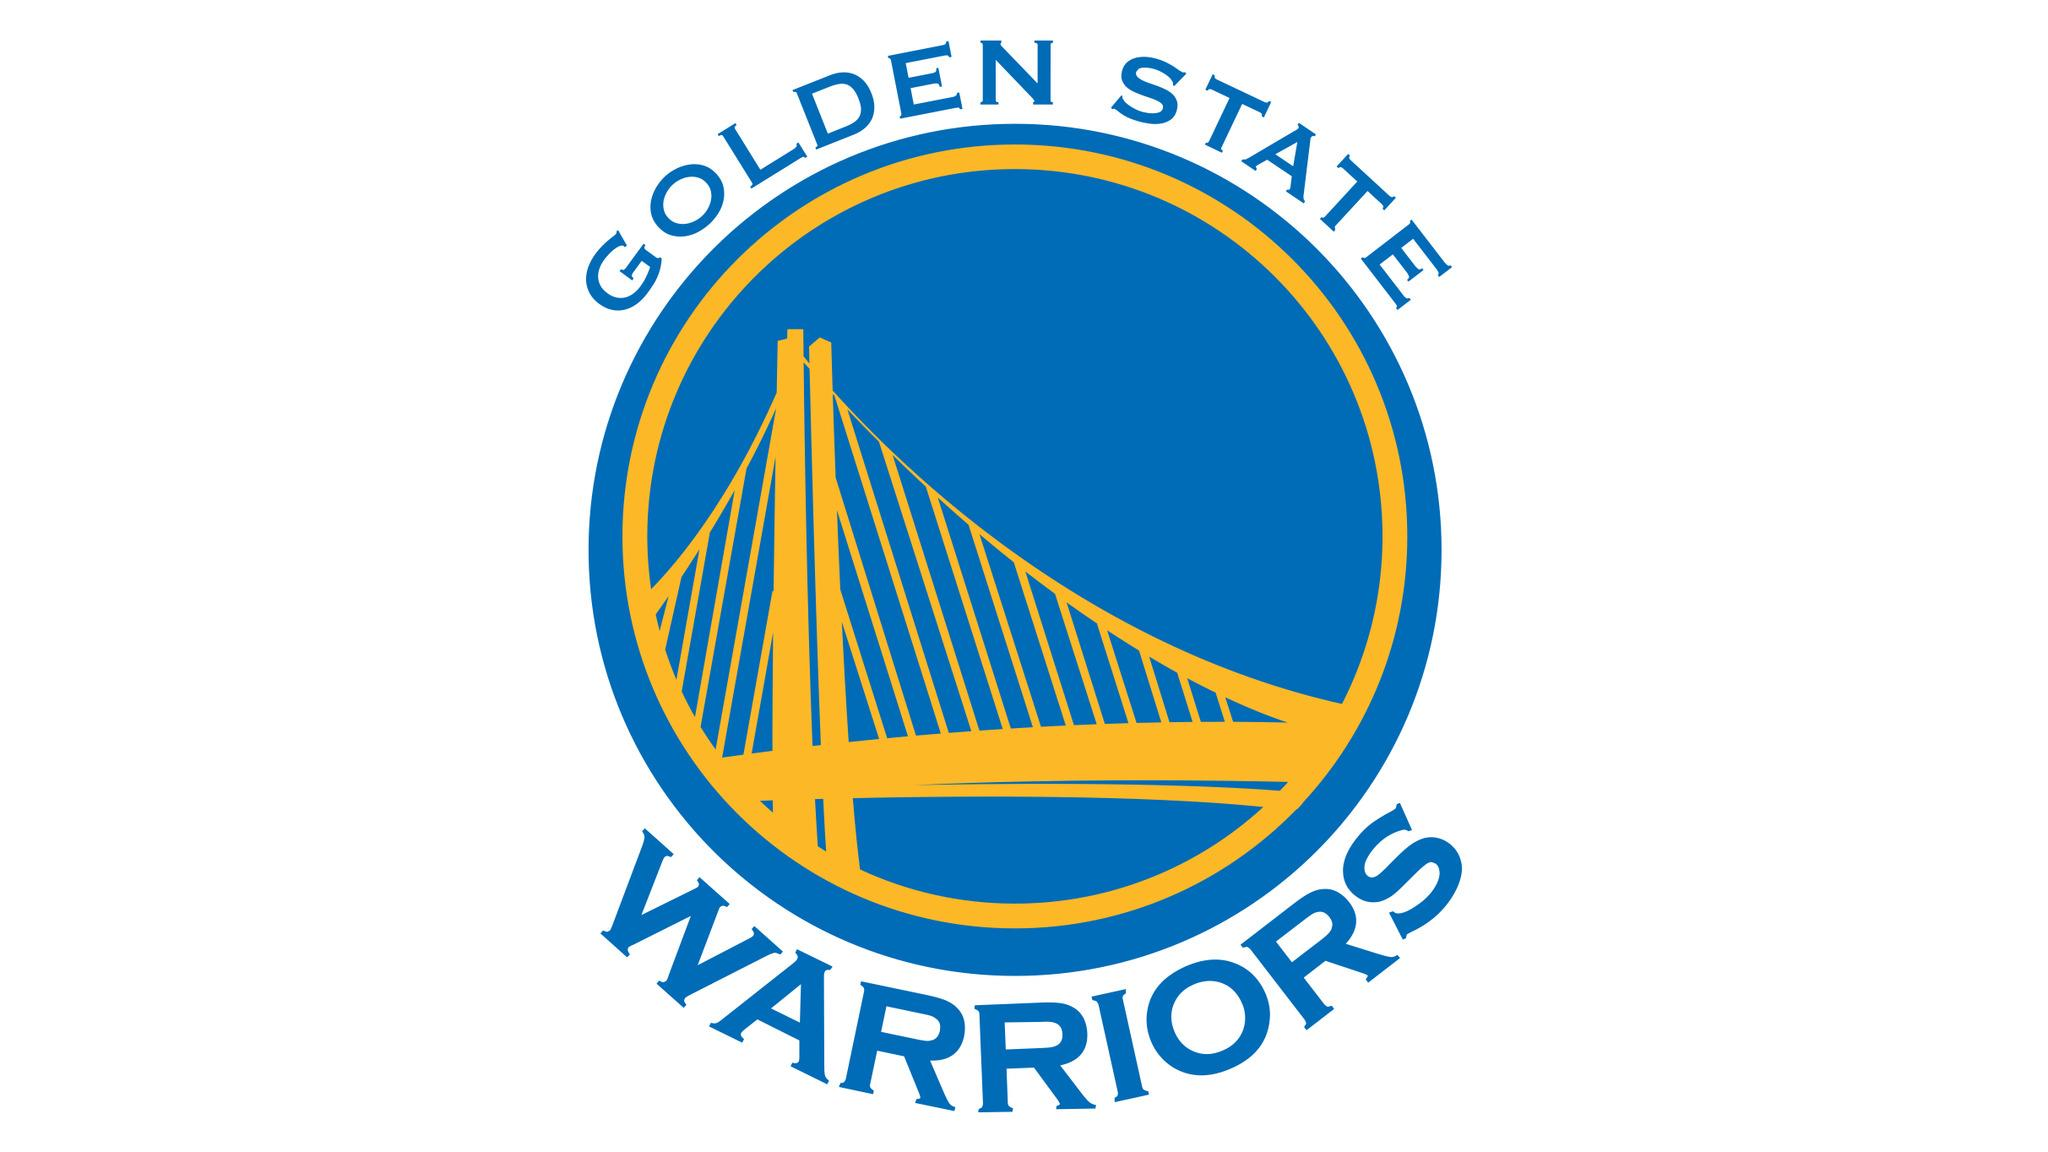 Golden State Warriors vs. New York Knicks - Oakland, CA 94621